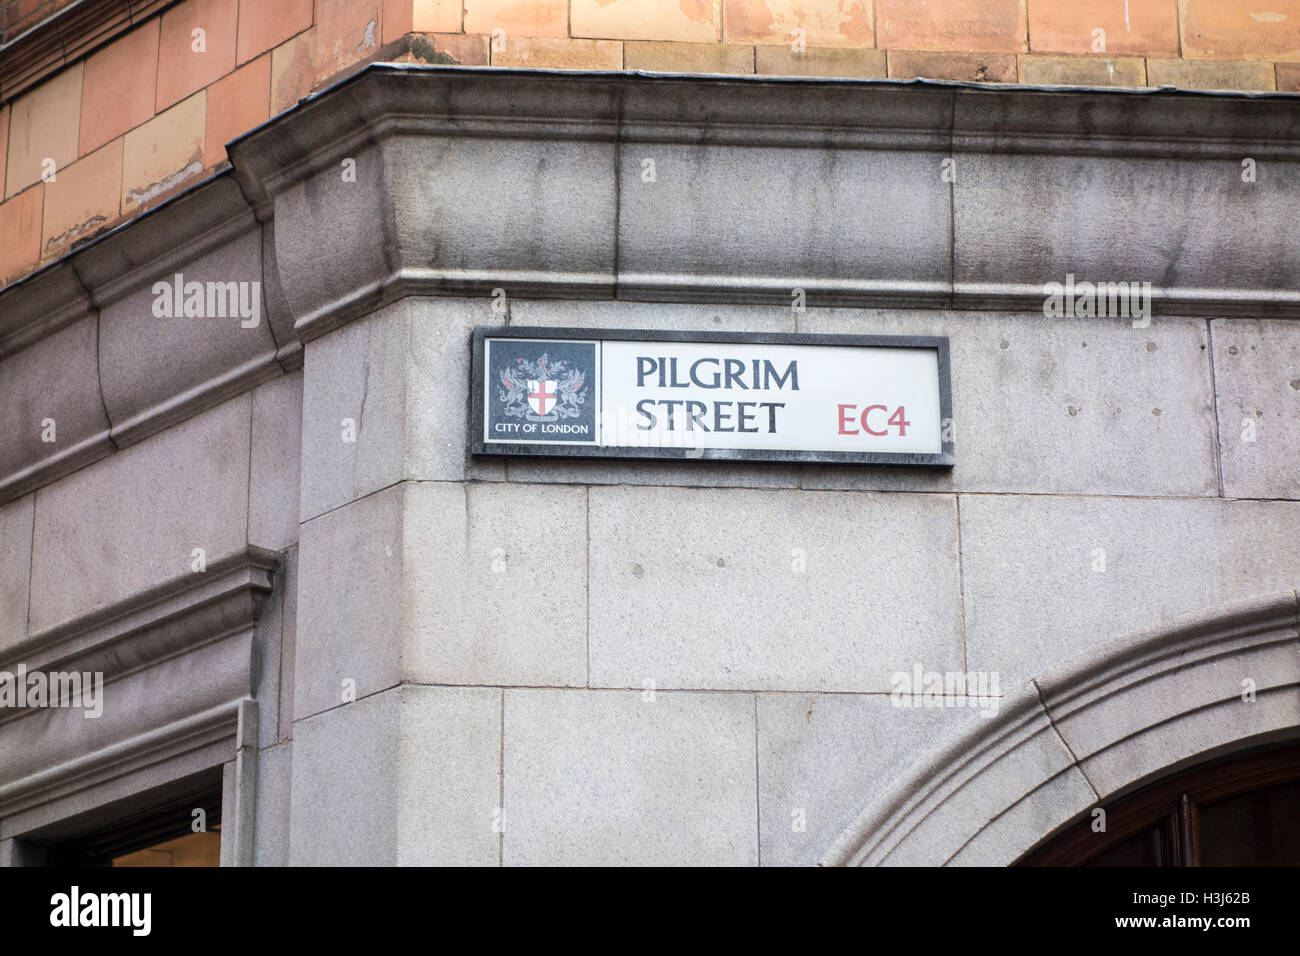 Pilgrim Street road sign, City of London, UK - Stock Image